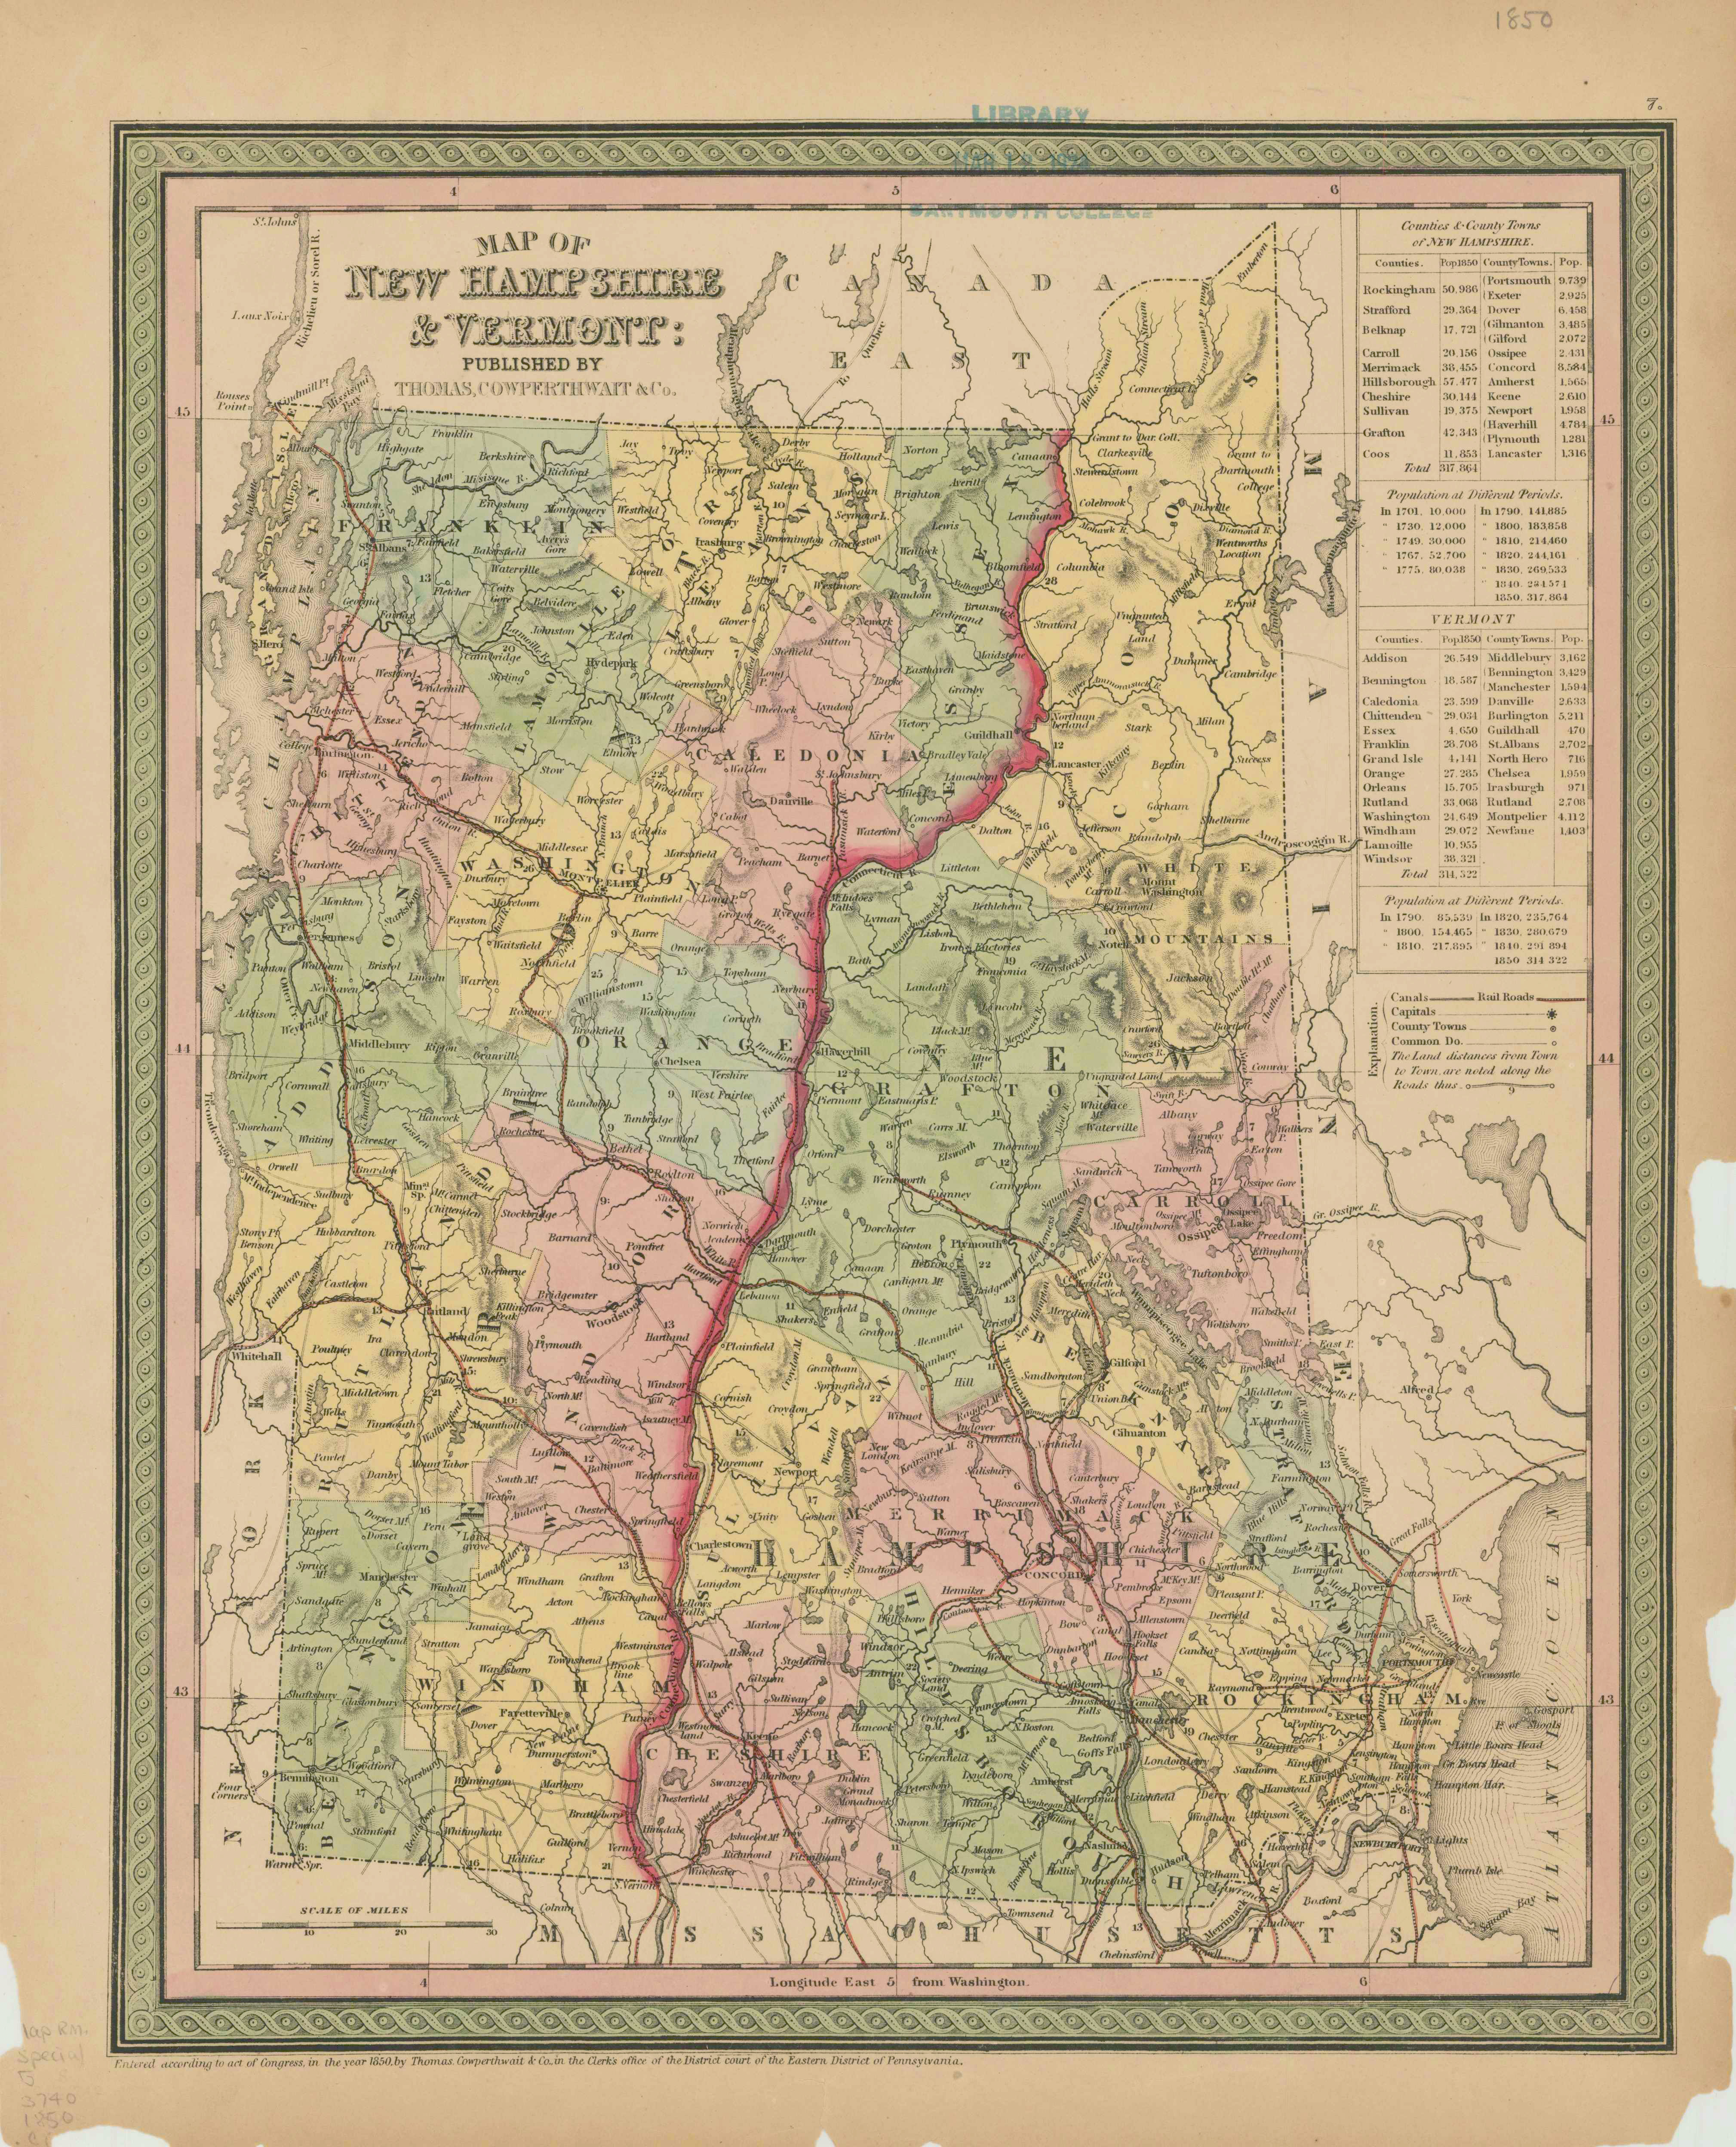 1850 New Hampshire map